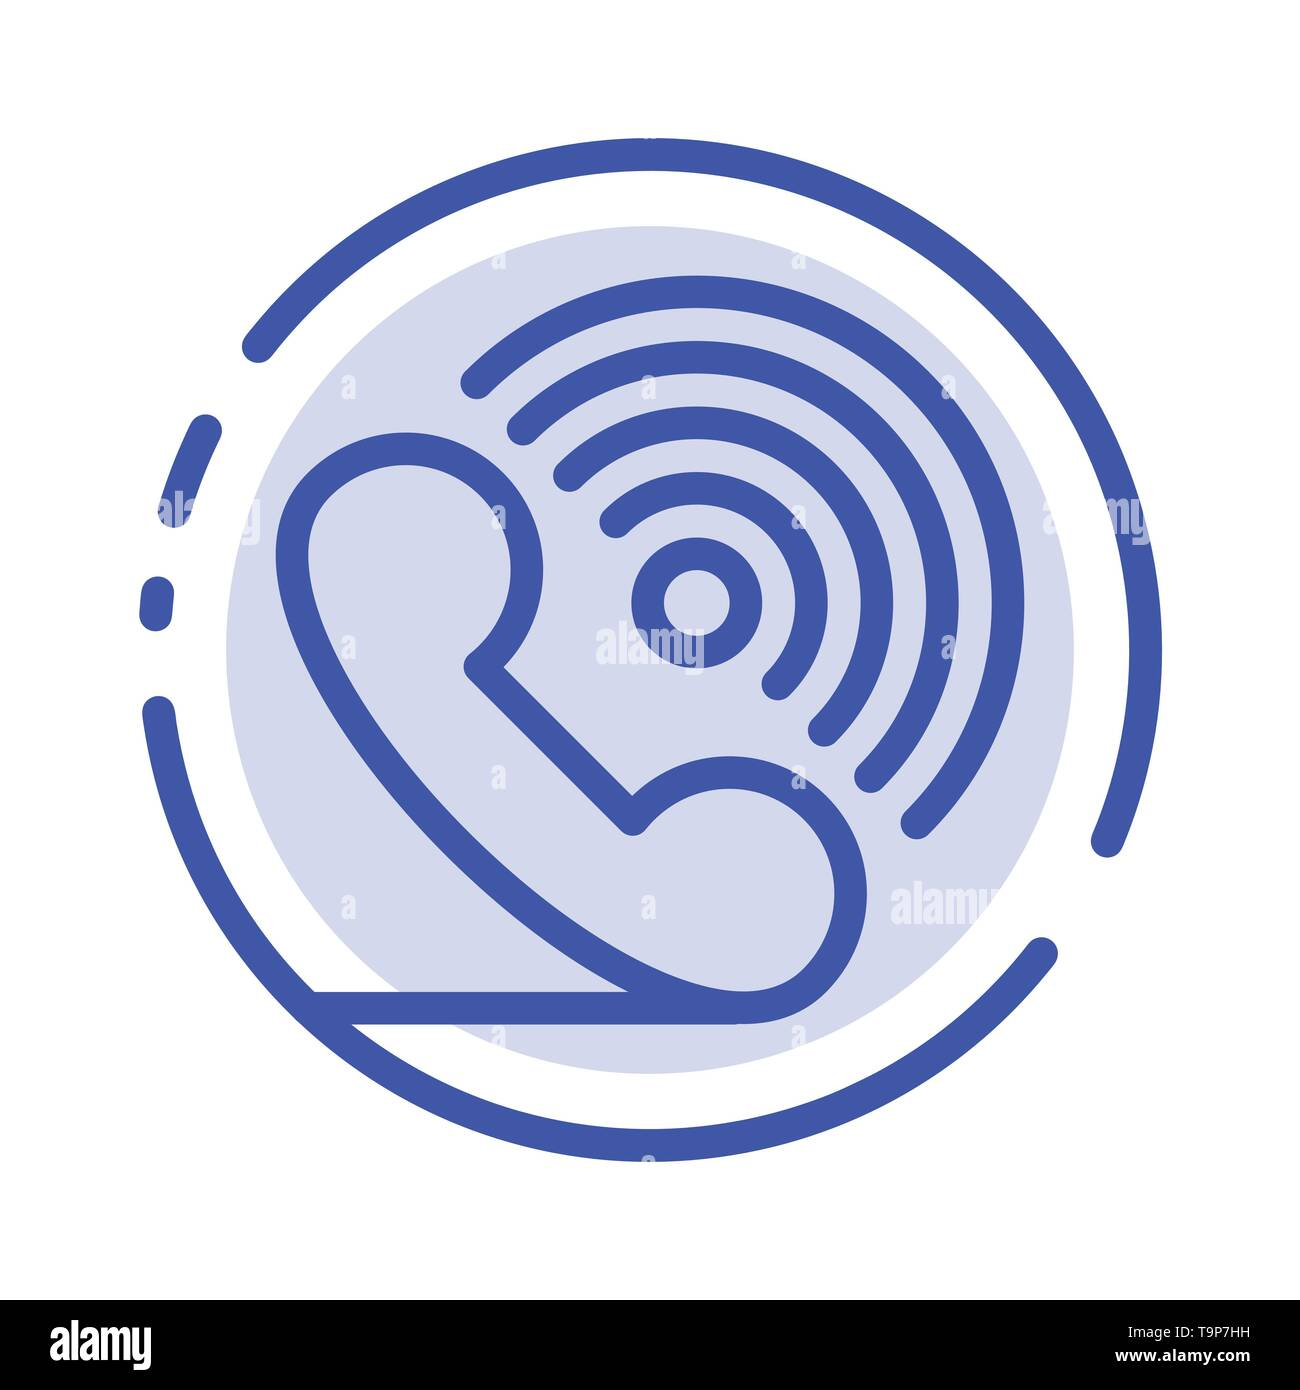 Call, Phone, Receiver, Ring, Signals Blue Dotted Line Line Icon - Stock Image